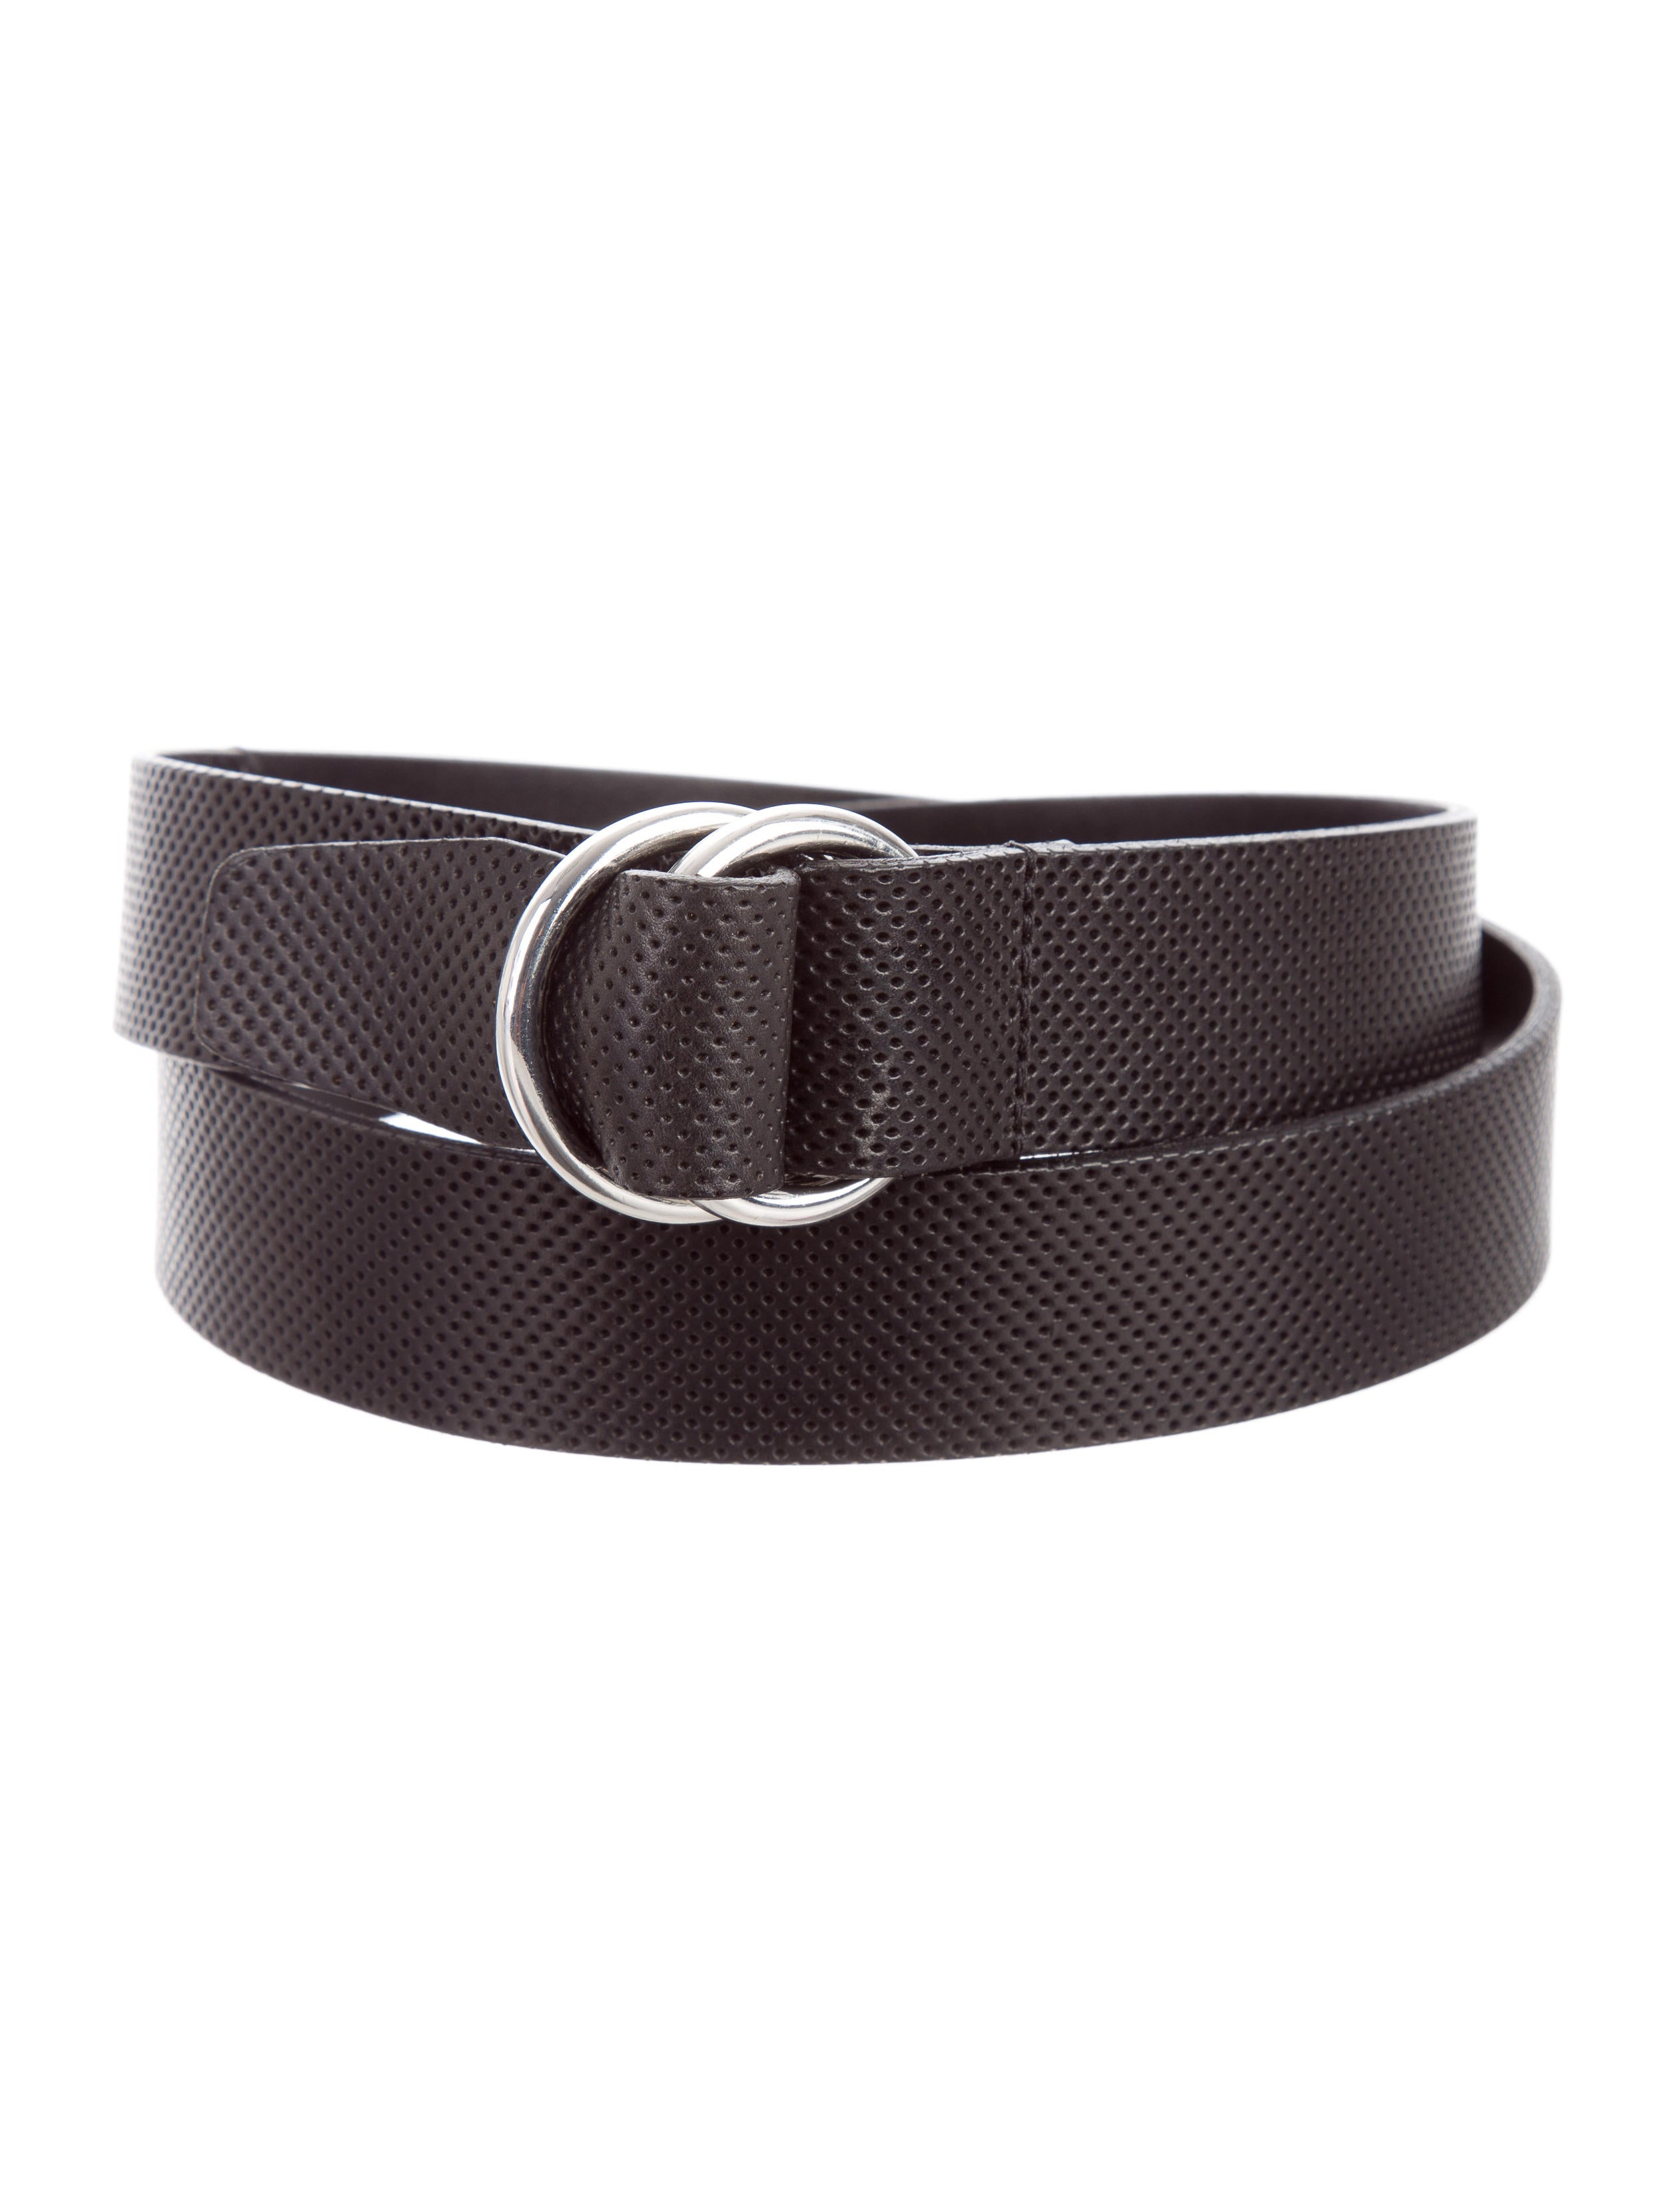 polo ralph perforated leather belt accessories